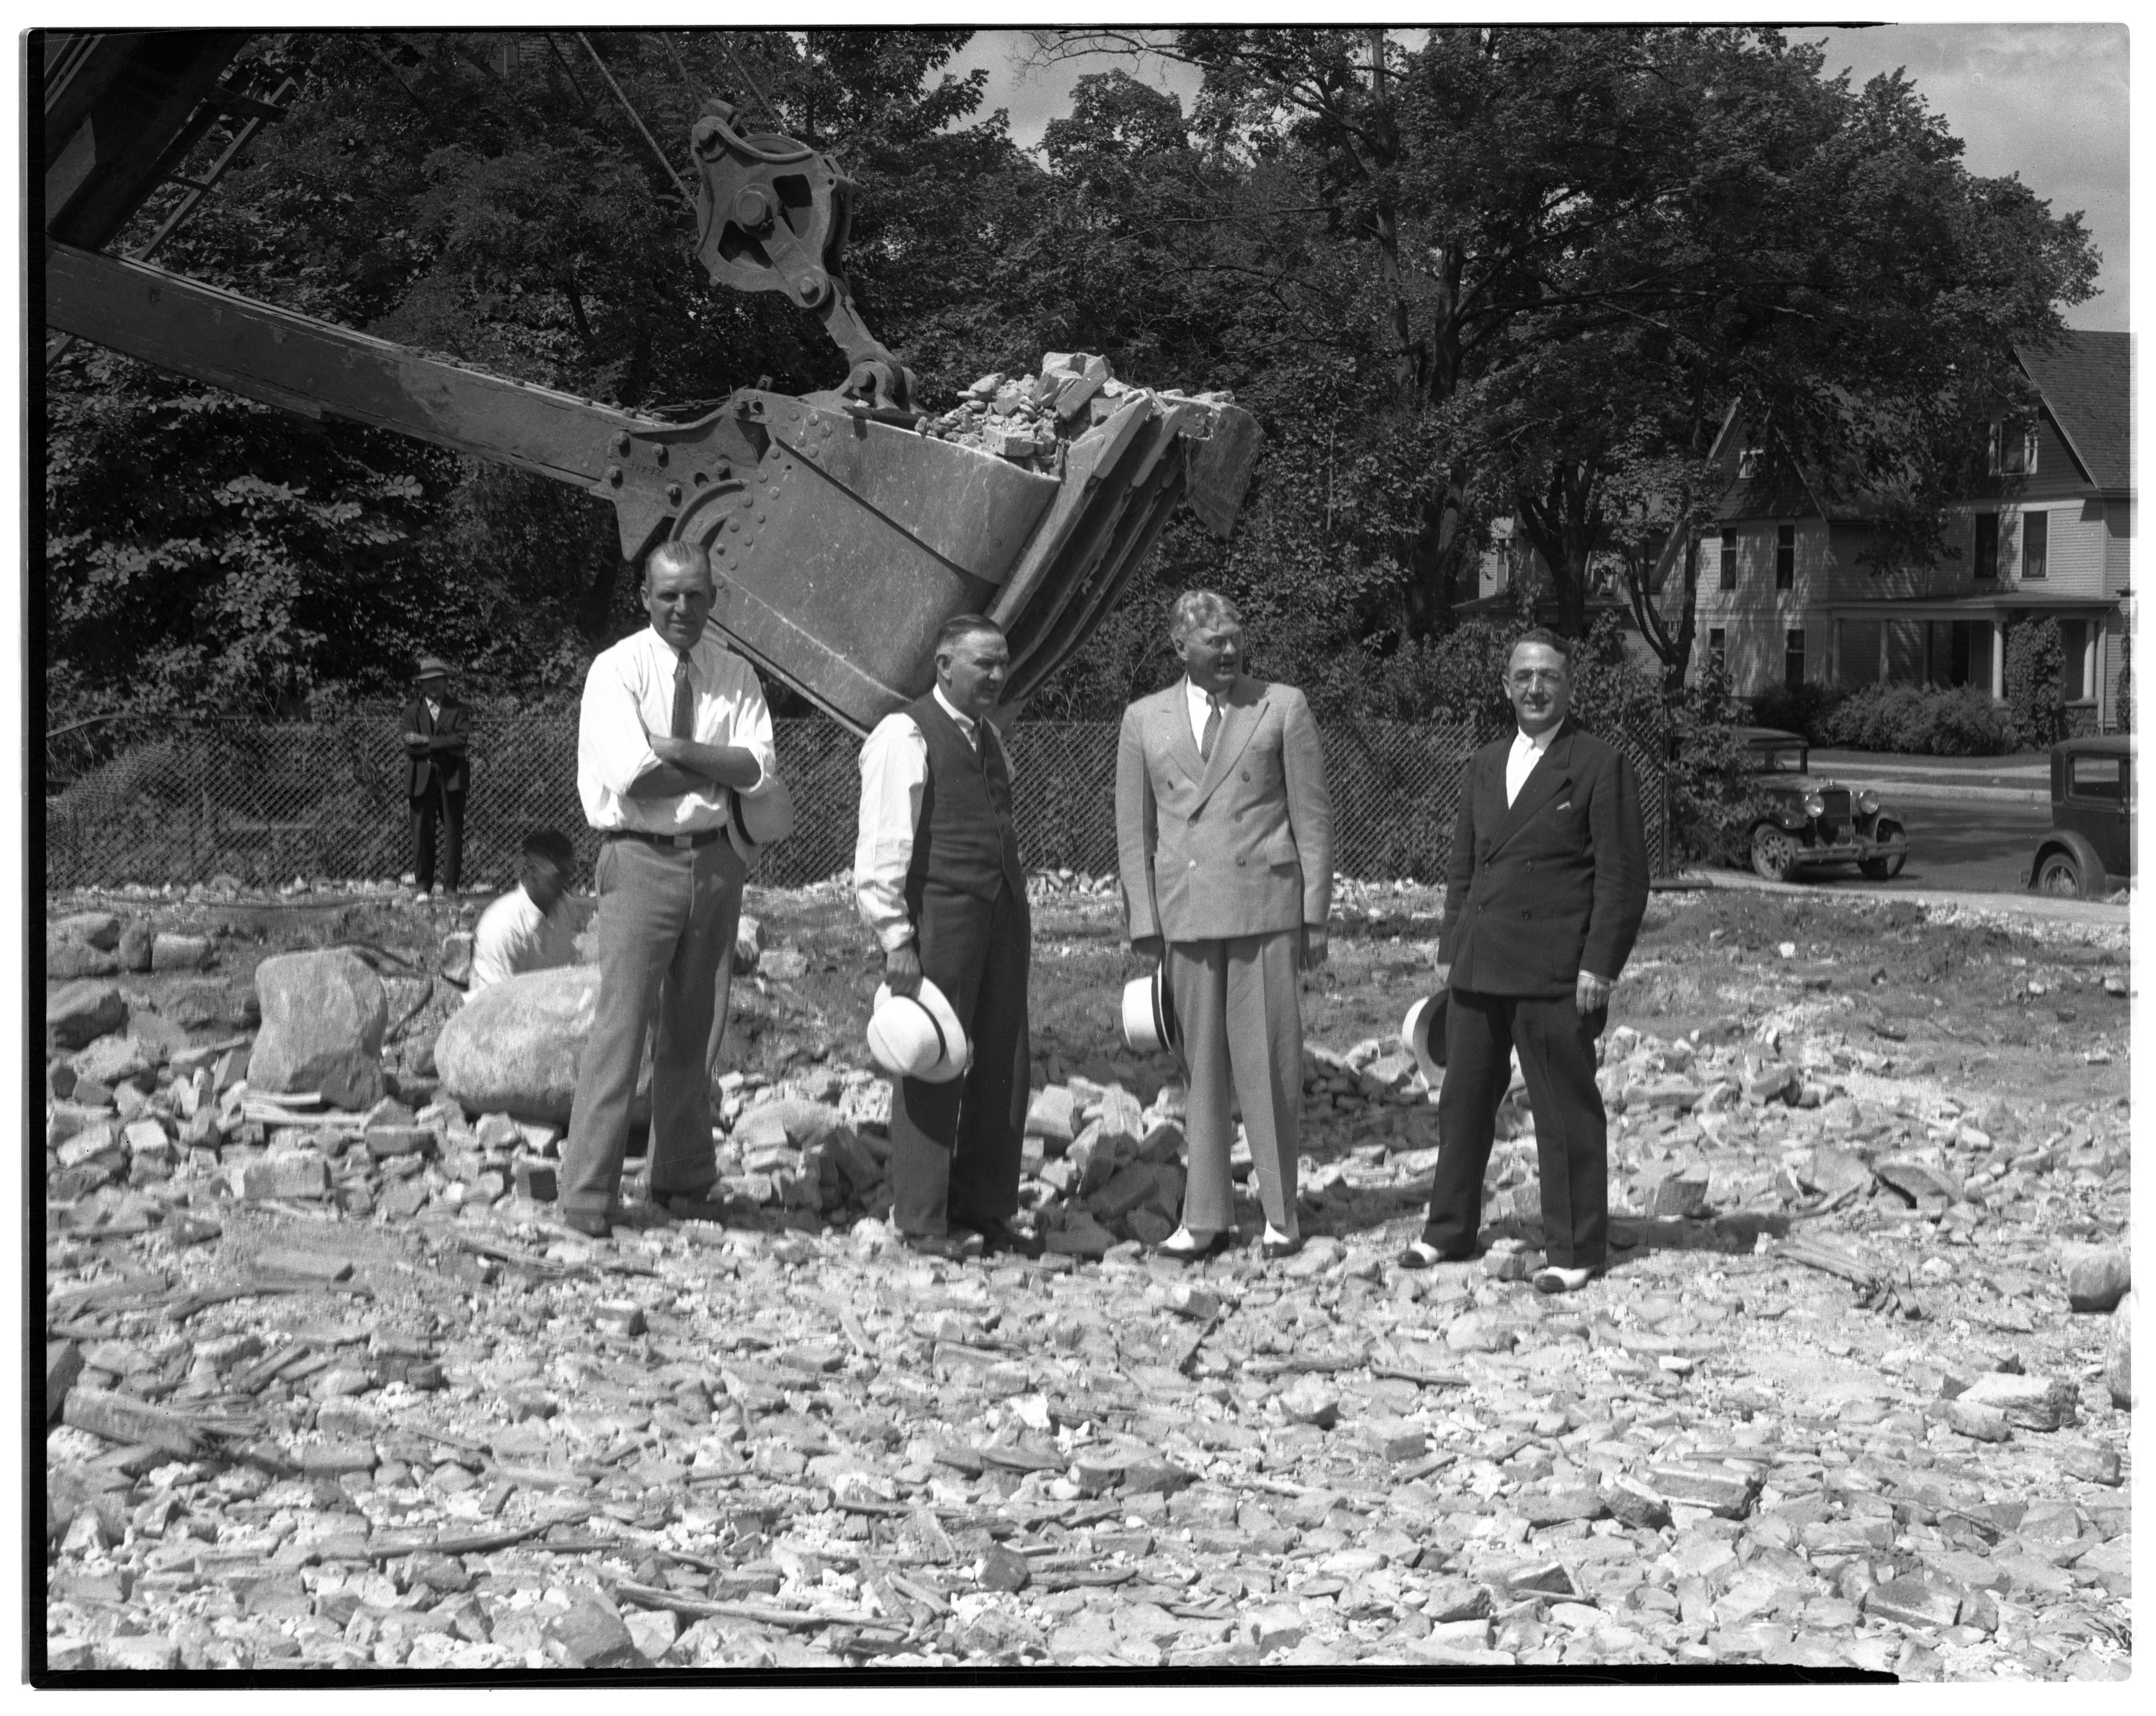 First Shovelful, Excavation of new Ann Arbor News Building, August 28, 1935 image